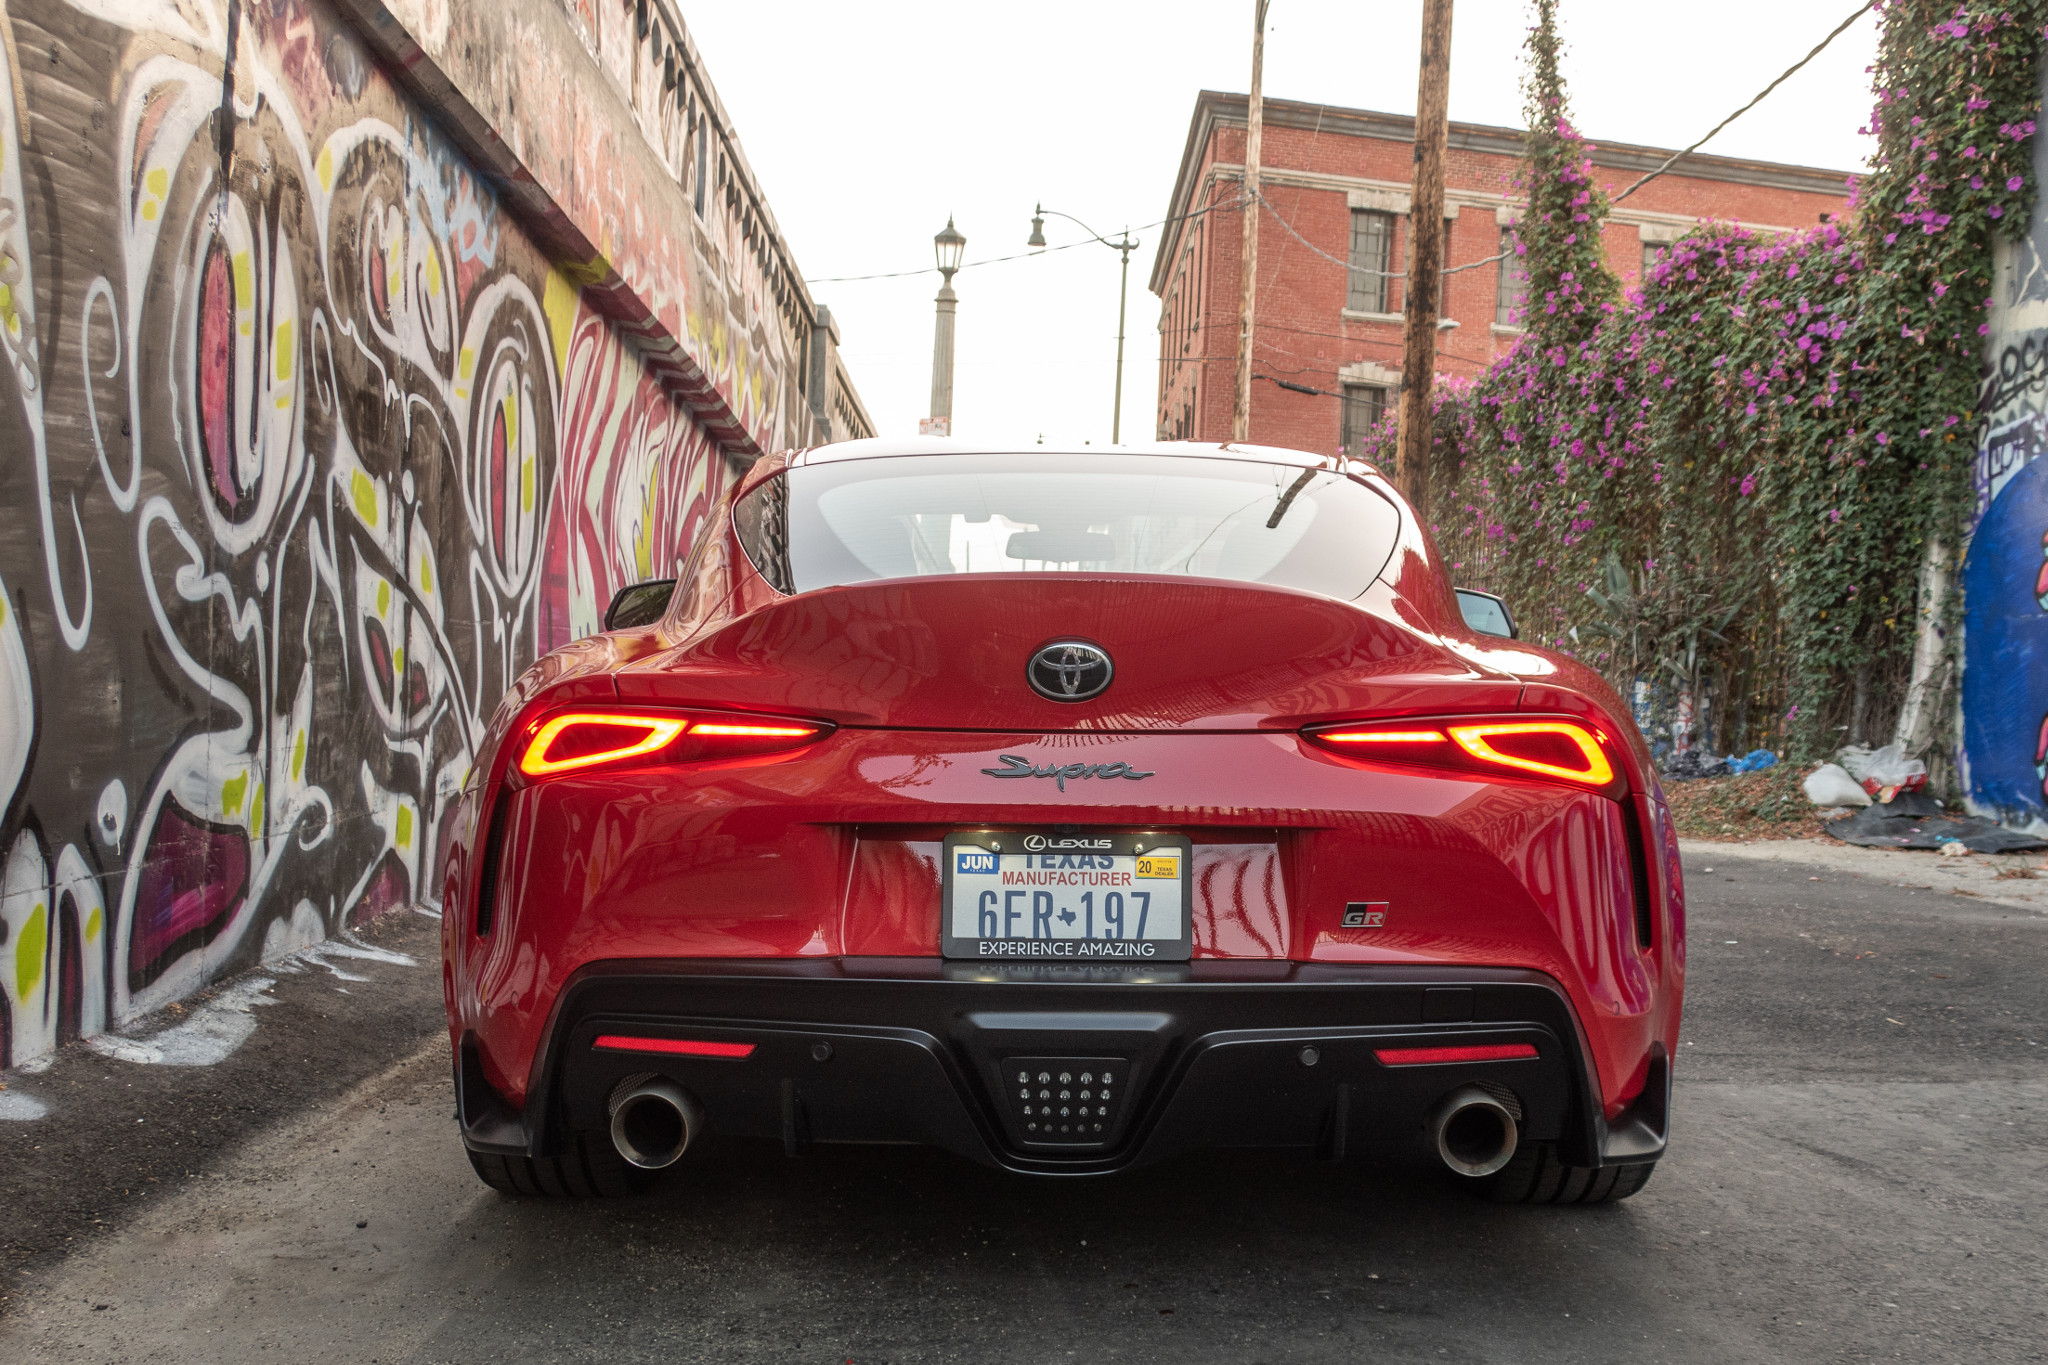 toyota-supra-2020-09-exterior--rear--red--textures-and-patterns--urban.jpg